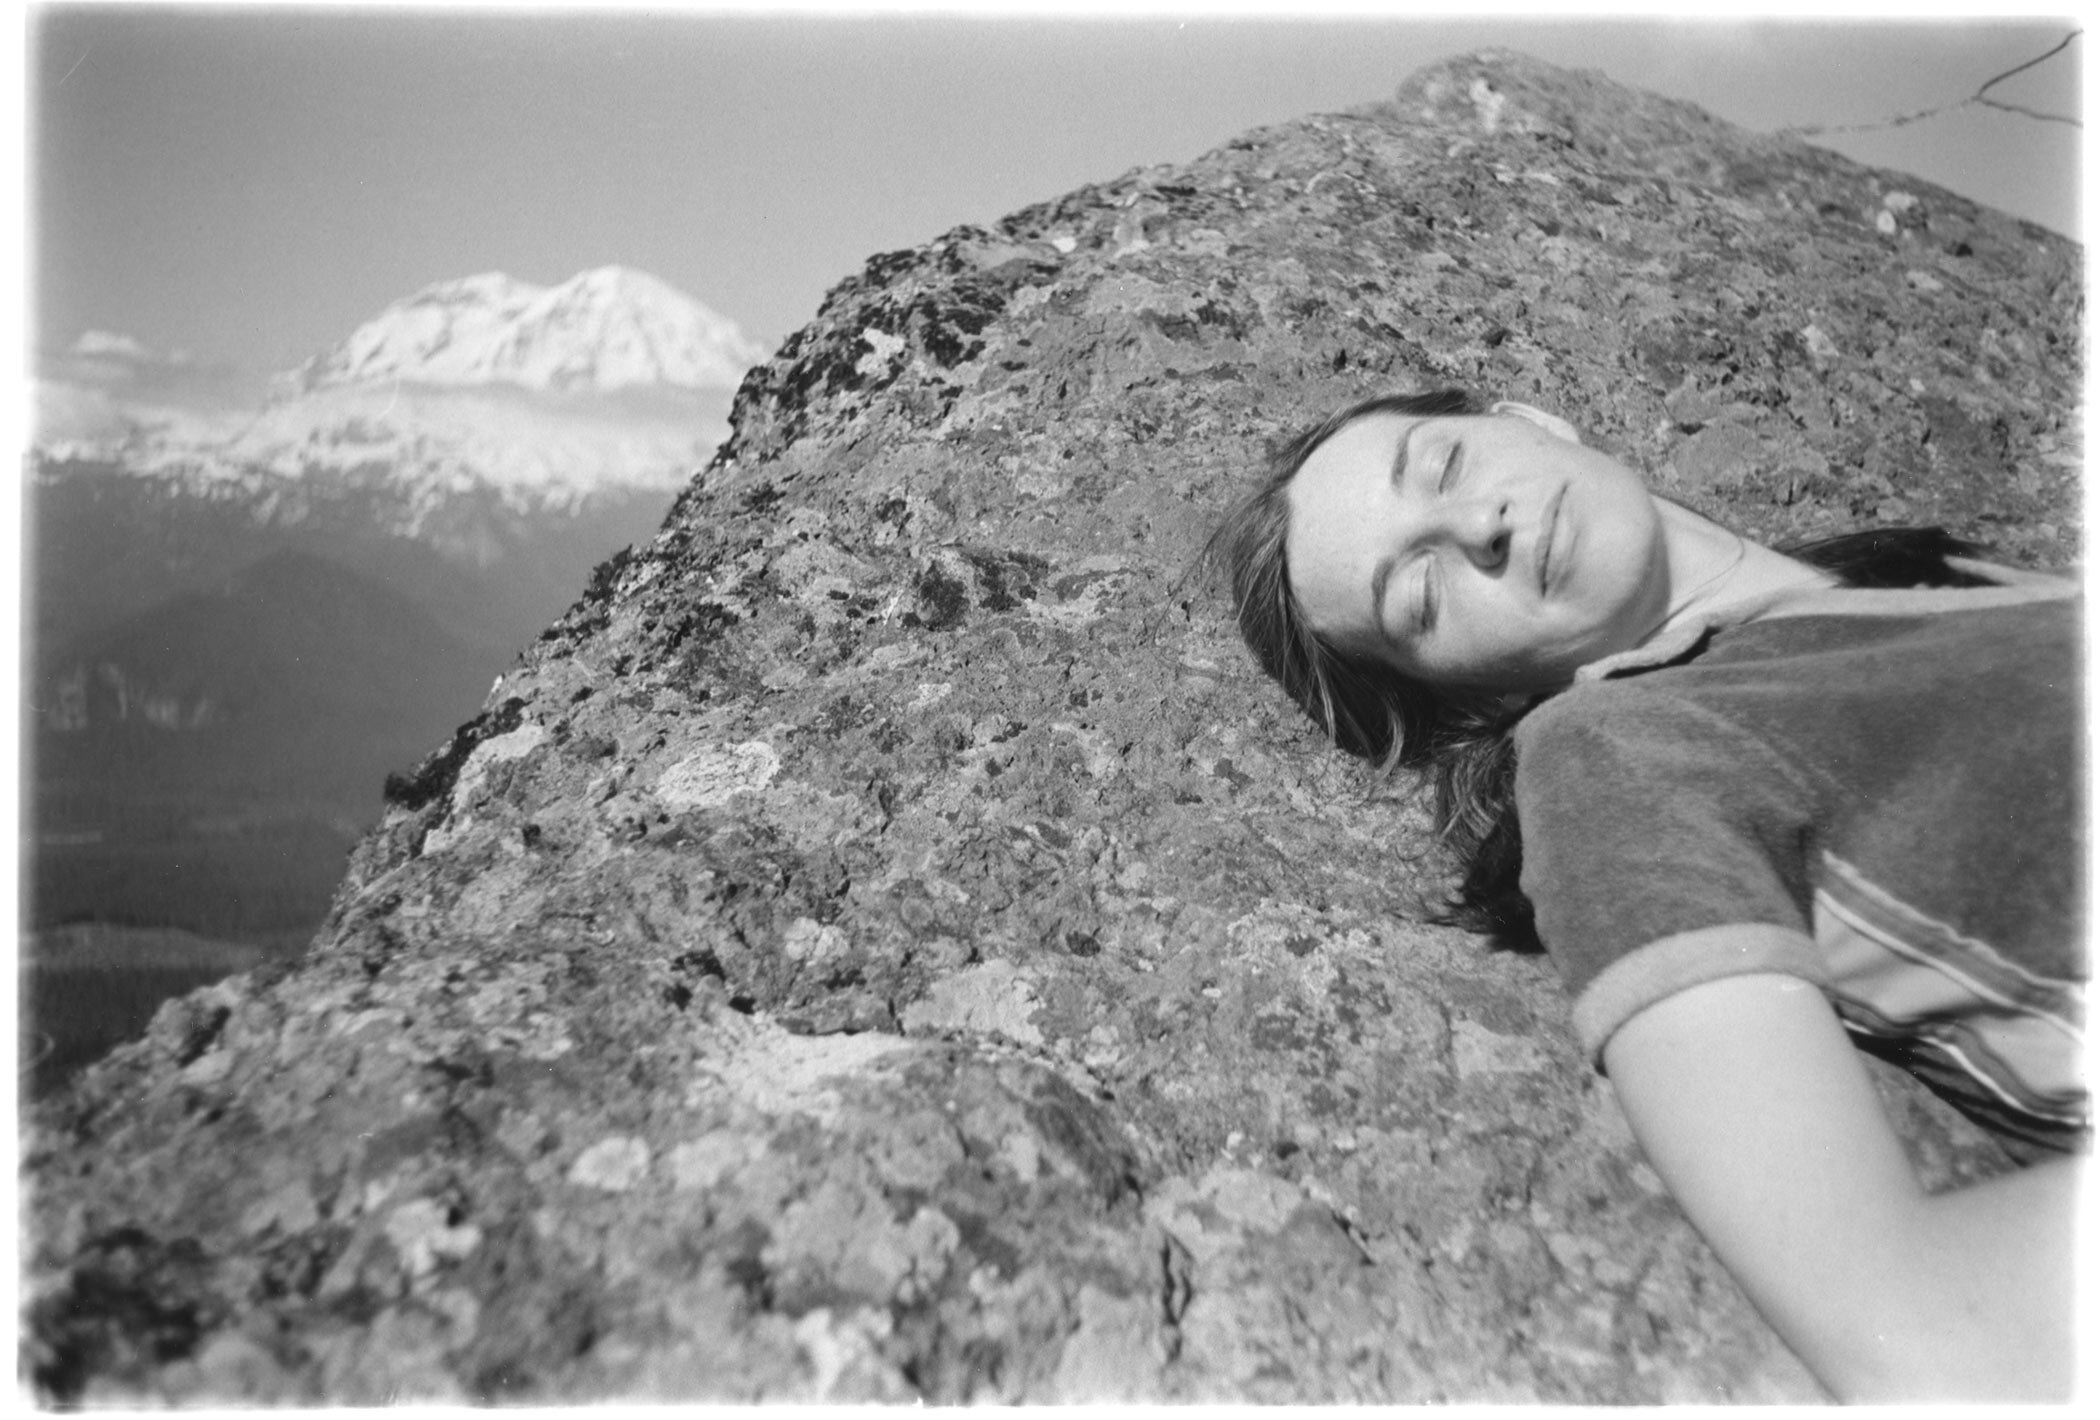 Elizabeth At High Rock, Gifford Pinchot National Forest, 1980 (Modern Silver), Today's Coolphoto 10/17/2019 Modern Silver:: Edition Two Only :: Size 10x8 :: Signed :: $250. ©2019 Christopher Petrich